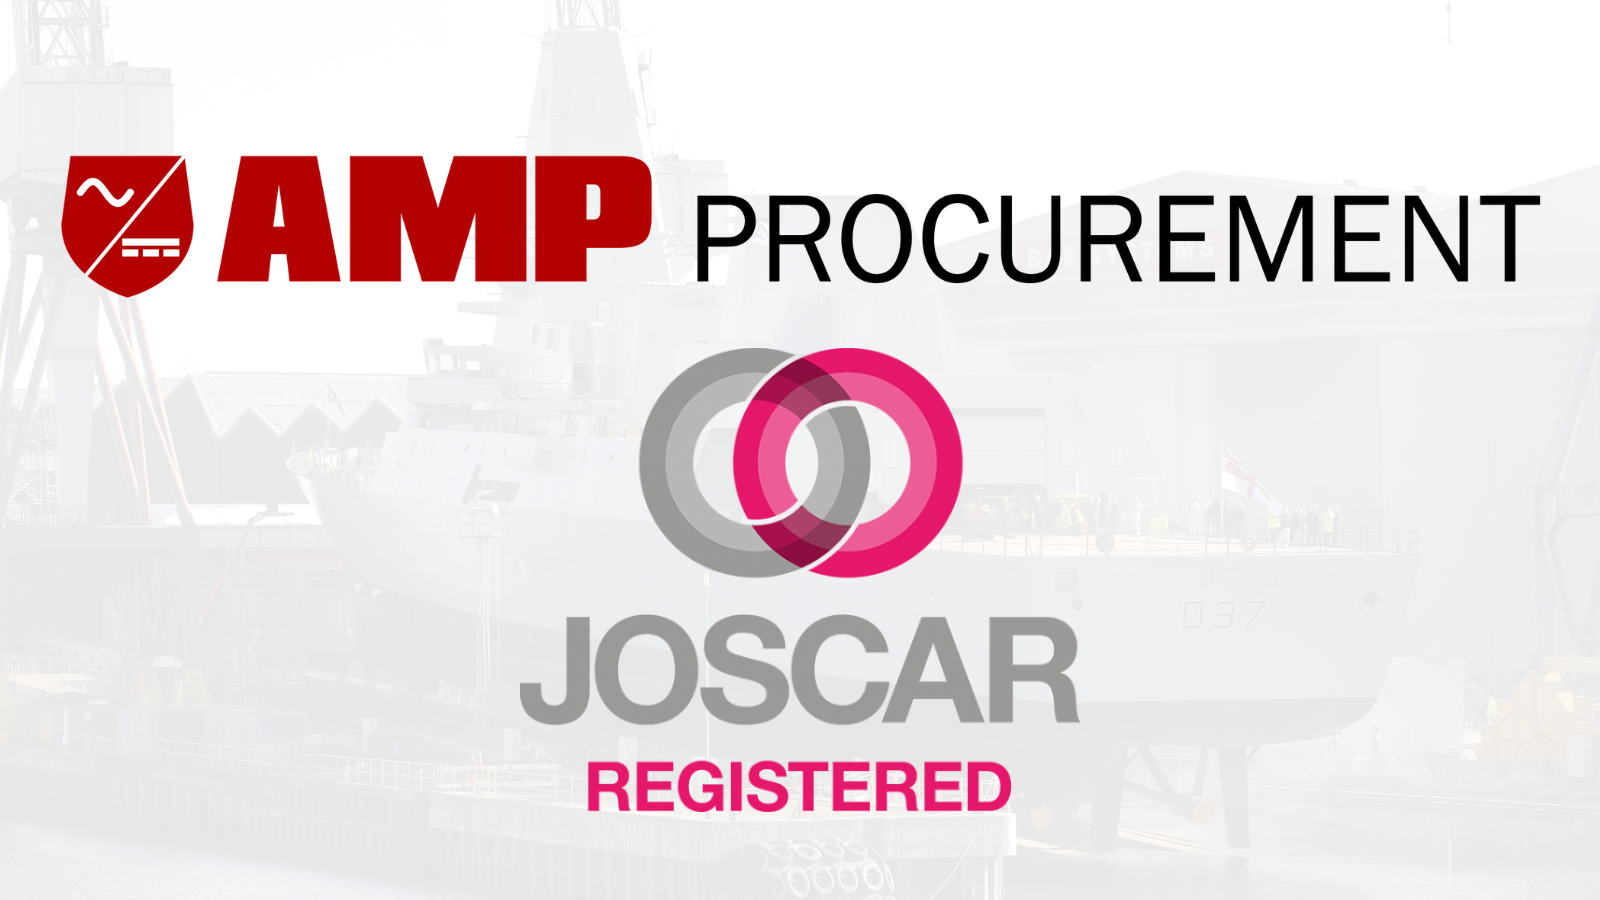 AMP Procurement JOSCAR